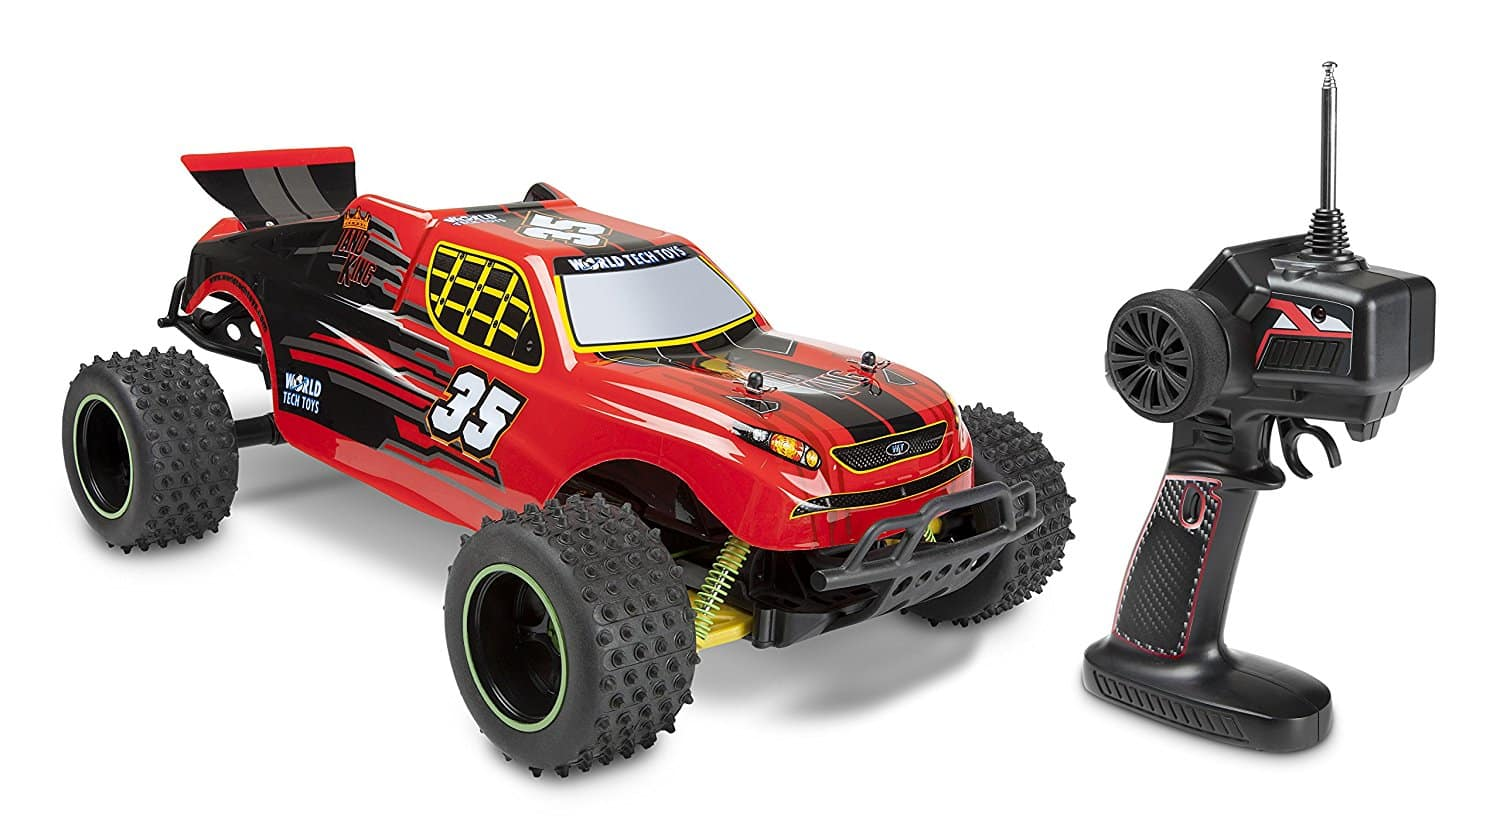 Carrinho Controle Remoto World Tech Land King Electric RC Truggy (1